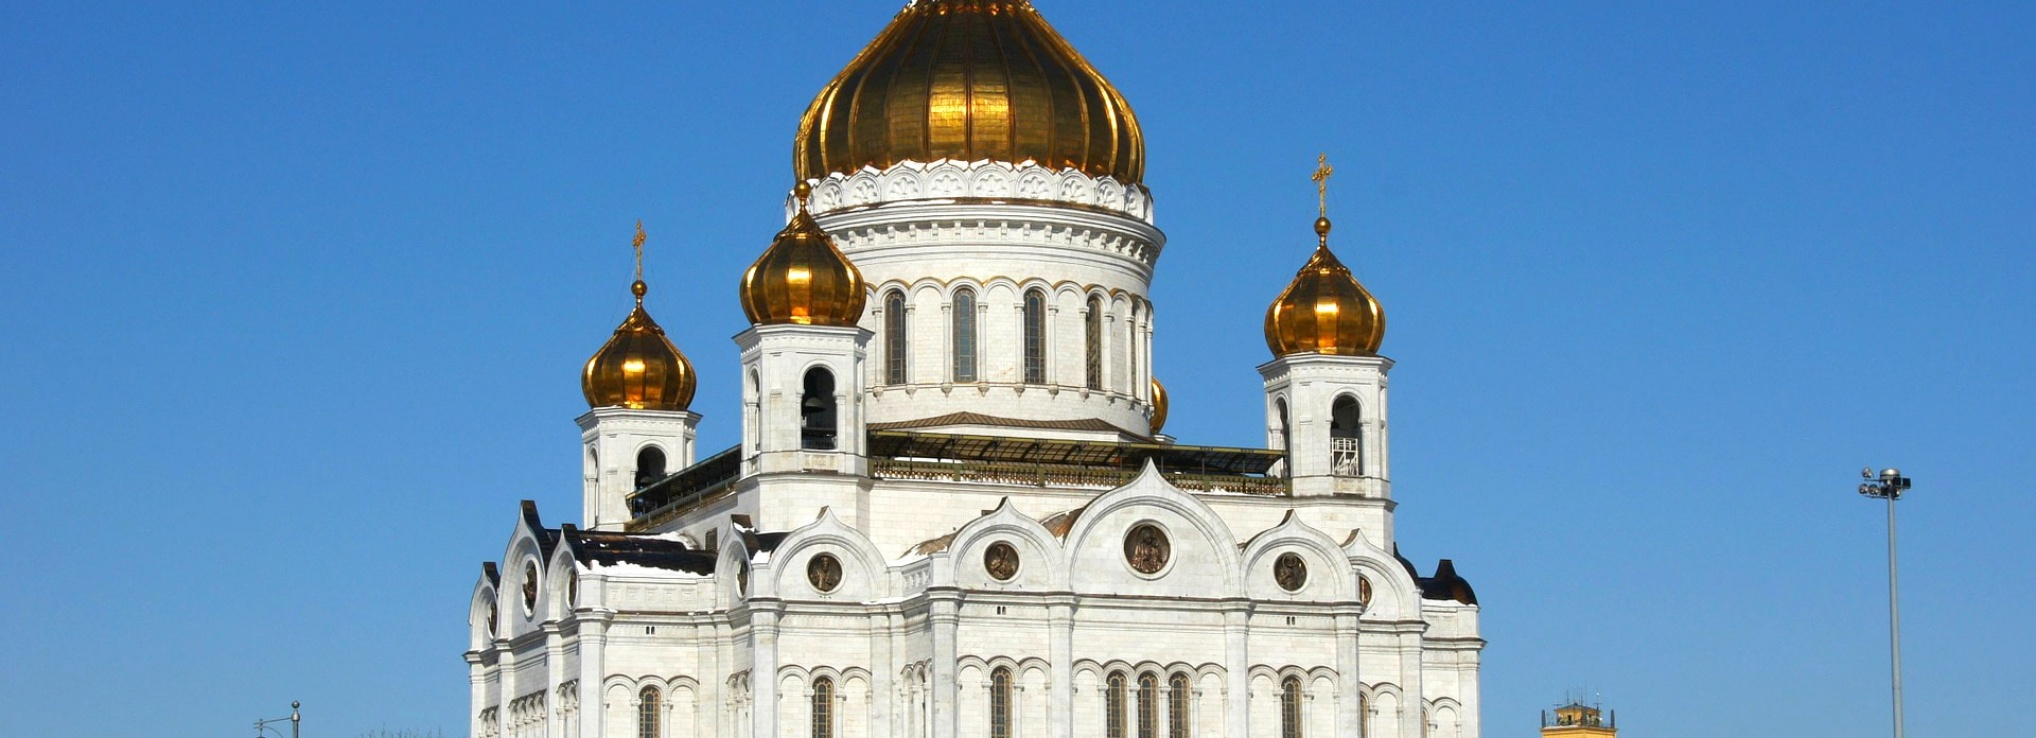 Christ the Savior, Moscow